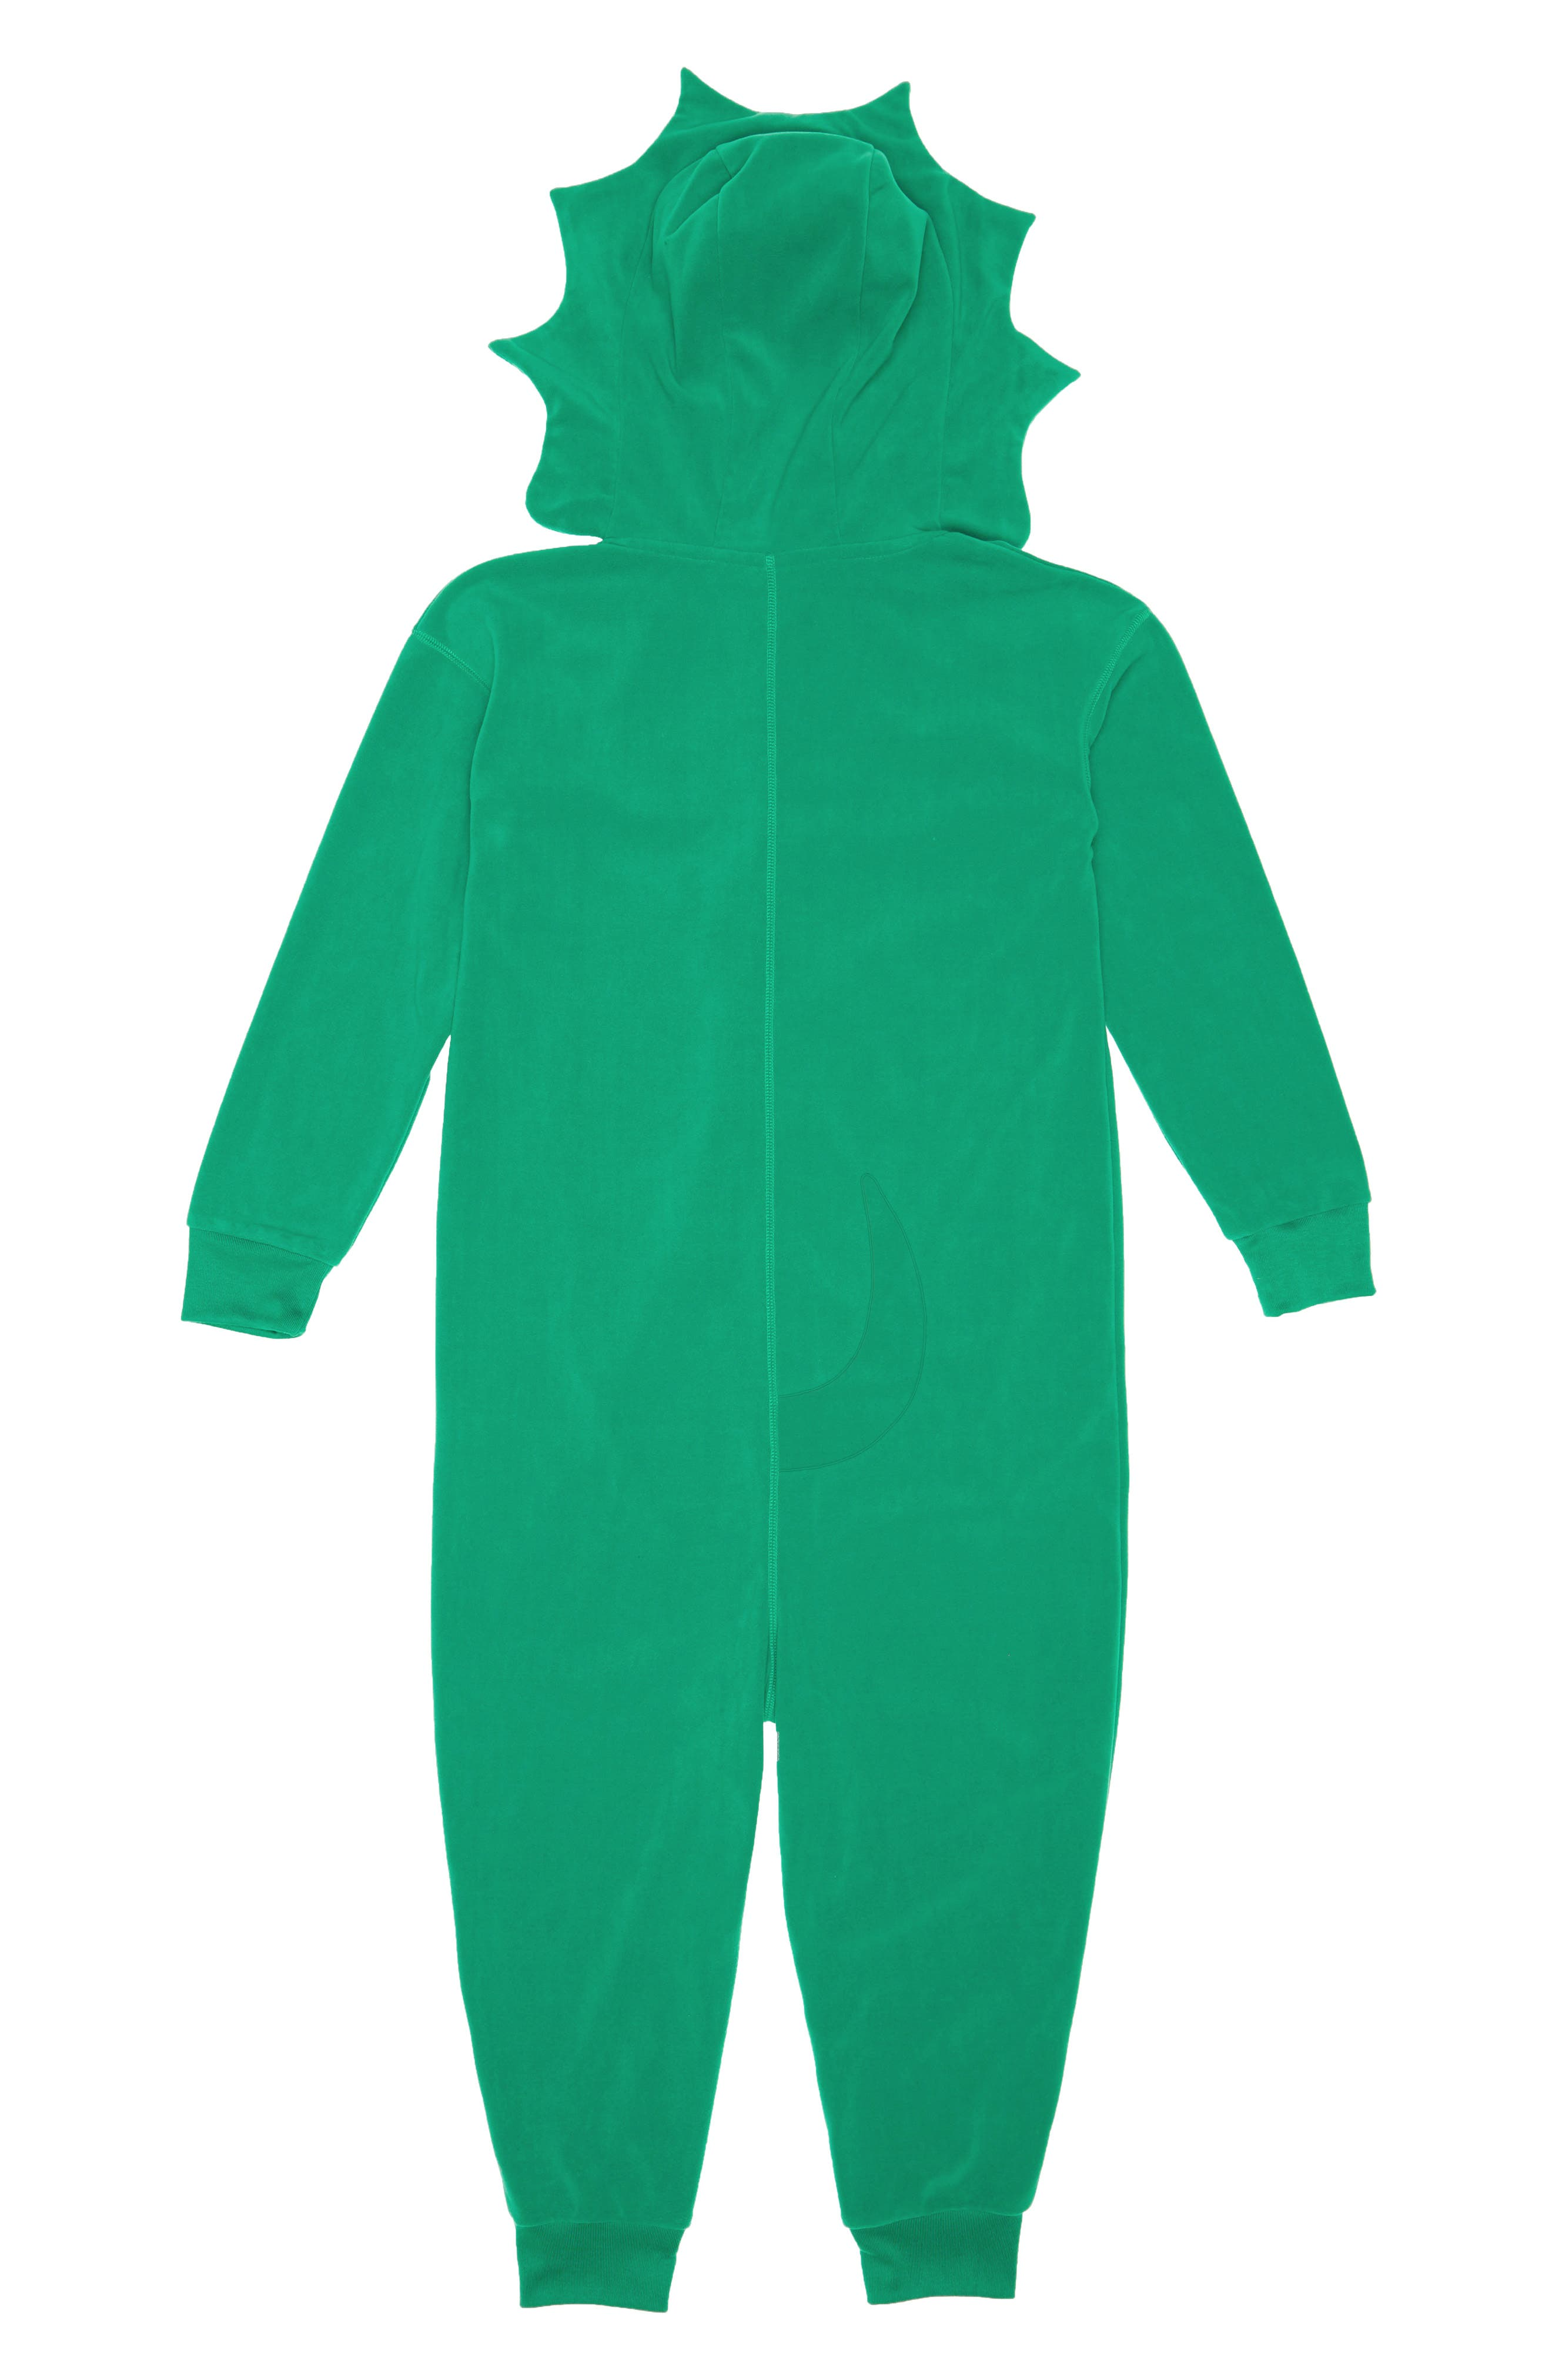 Animal One-Piece Hooded Pajamas,                             Alternate thumbnail 2, color,                             301